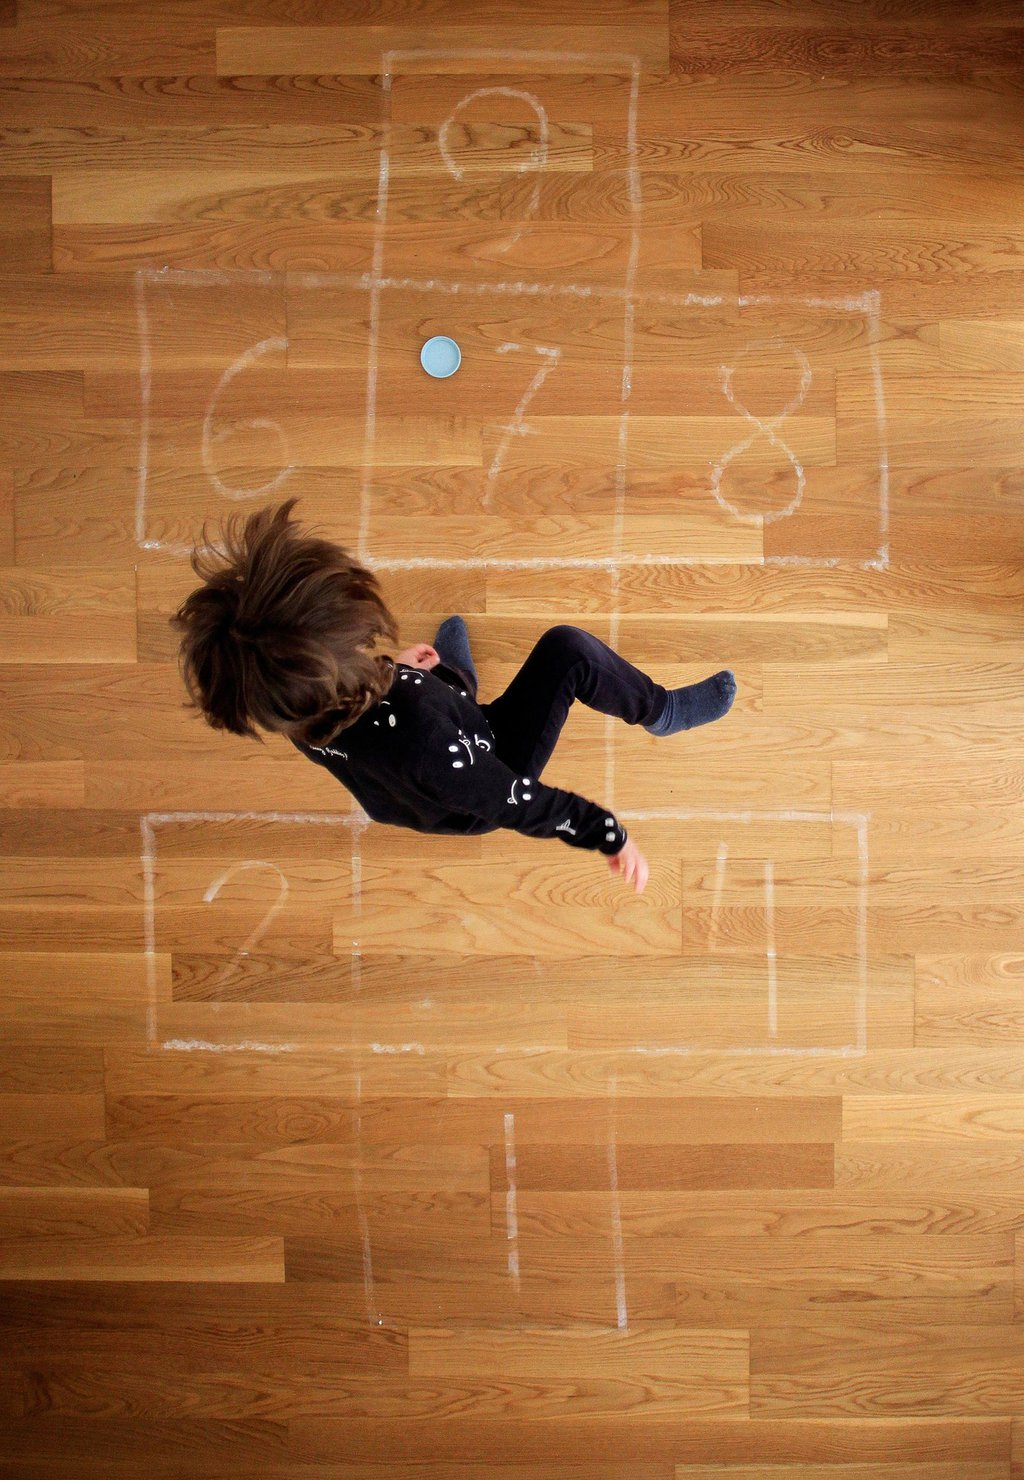 A boy plays hopscotch at his home in A Coruna, Spain, on April 23. Cabalar-EPA-EFE-Shutterstock.jpg